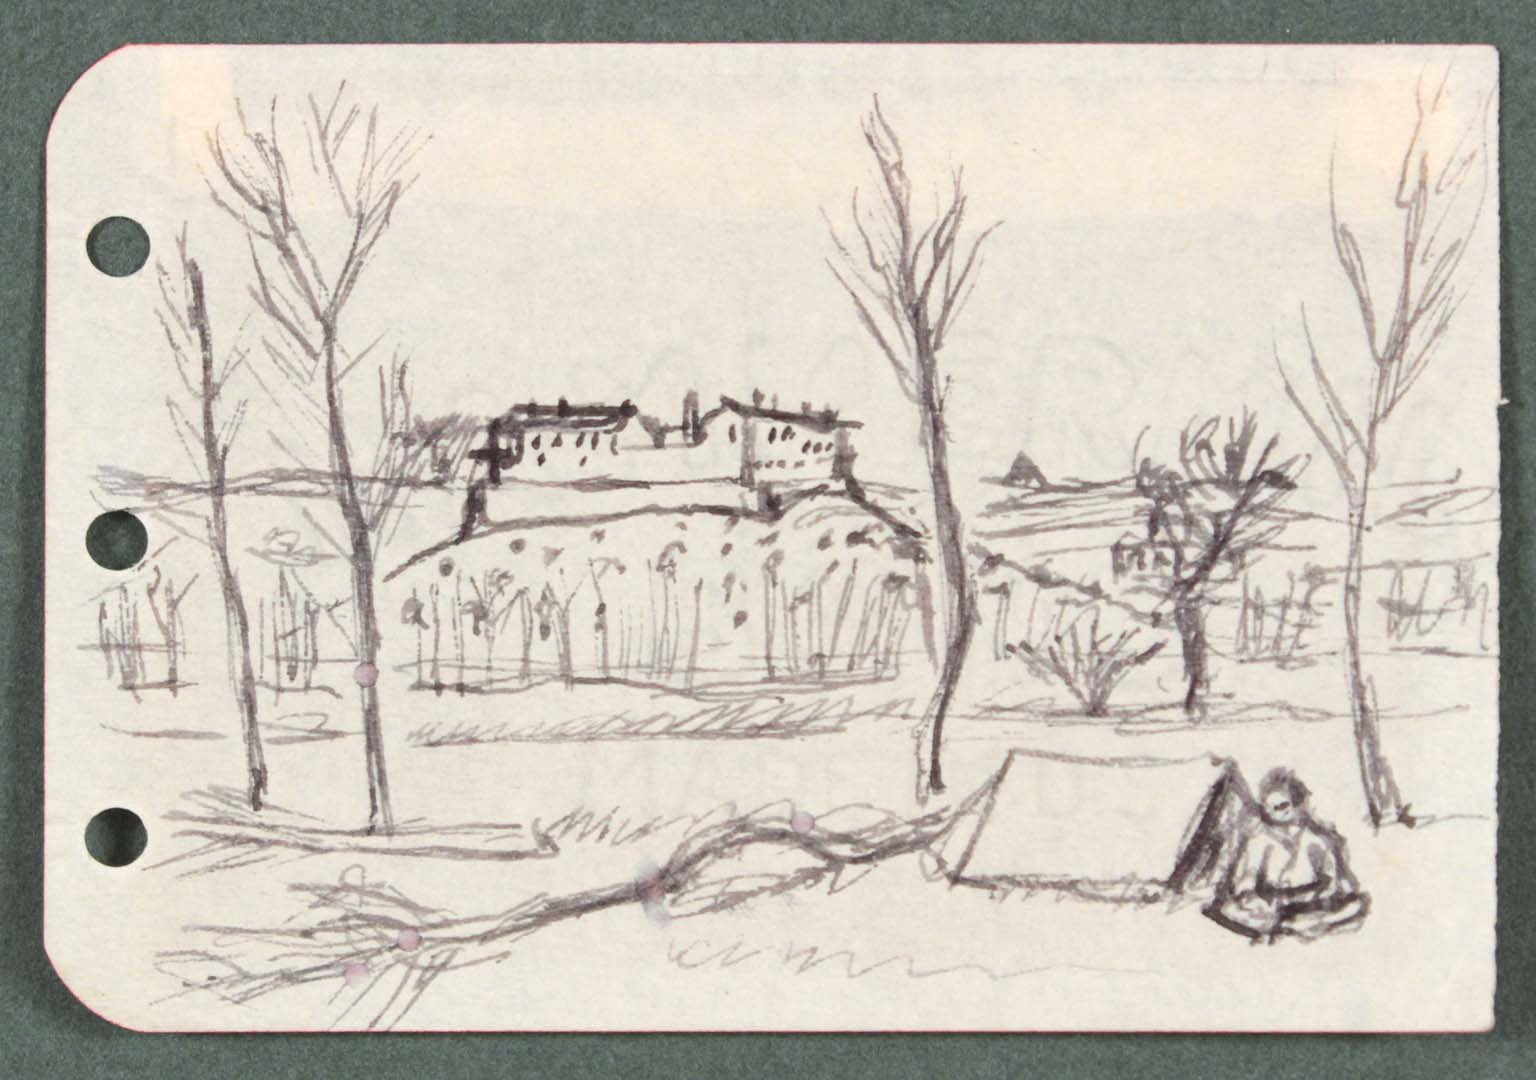 1944 Rome Italy IX Pen and Ink on Paper 2.50 x 3.6875